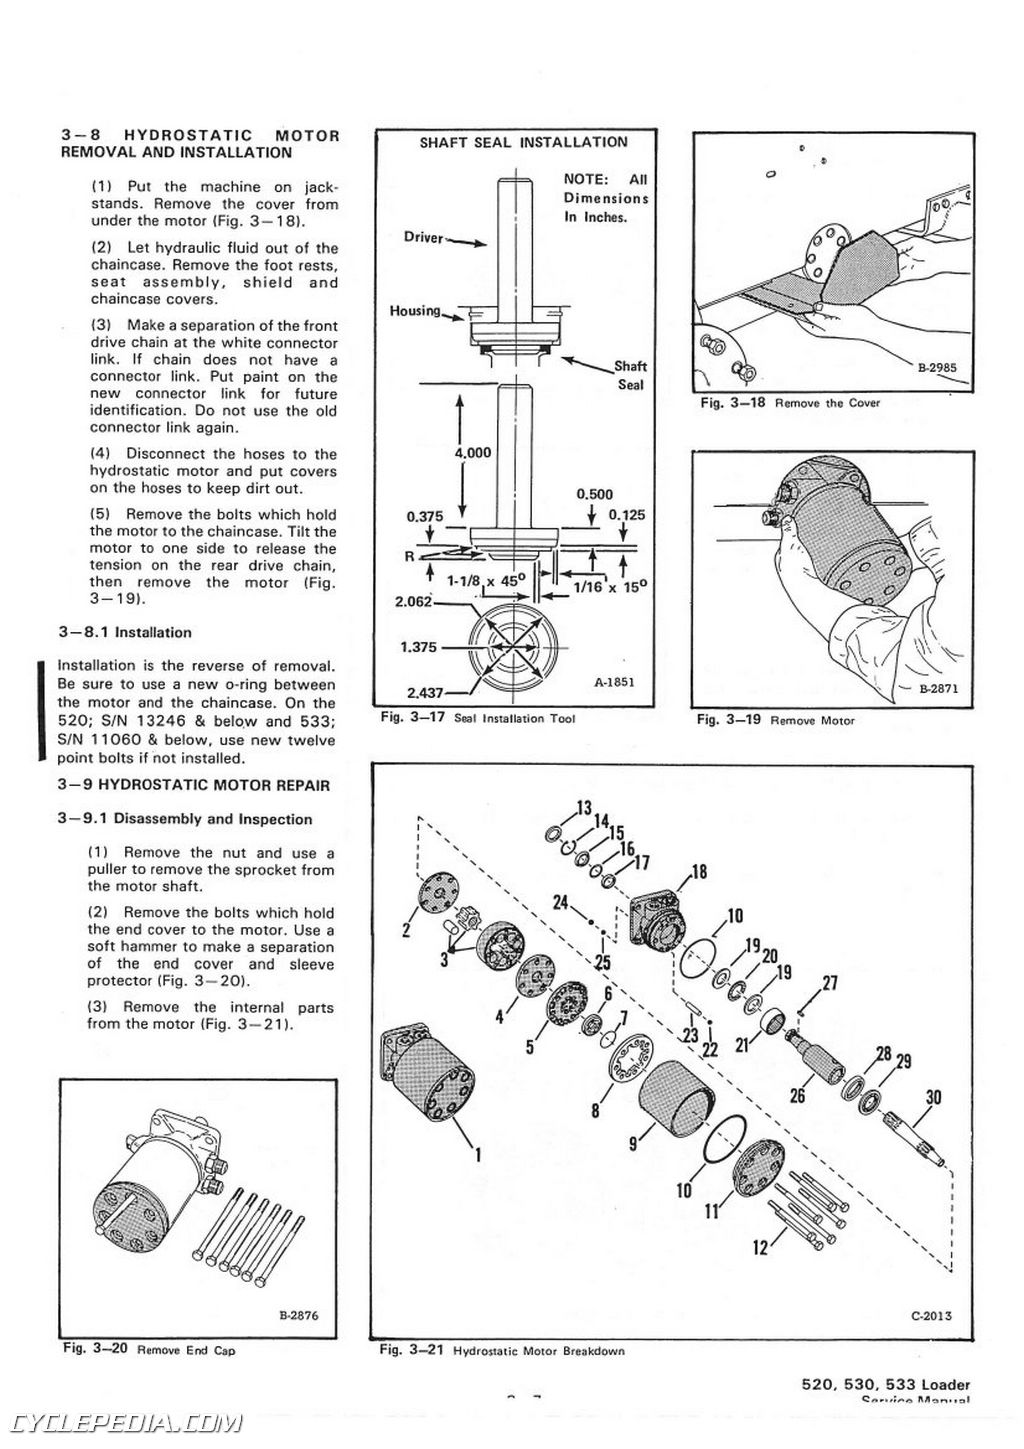 bobcat 520 530 533 skid steer service manual rh repairmanual com